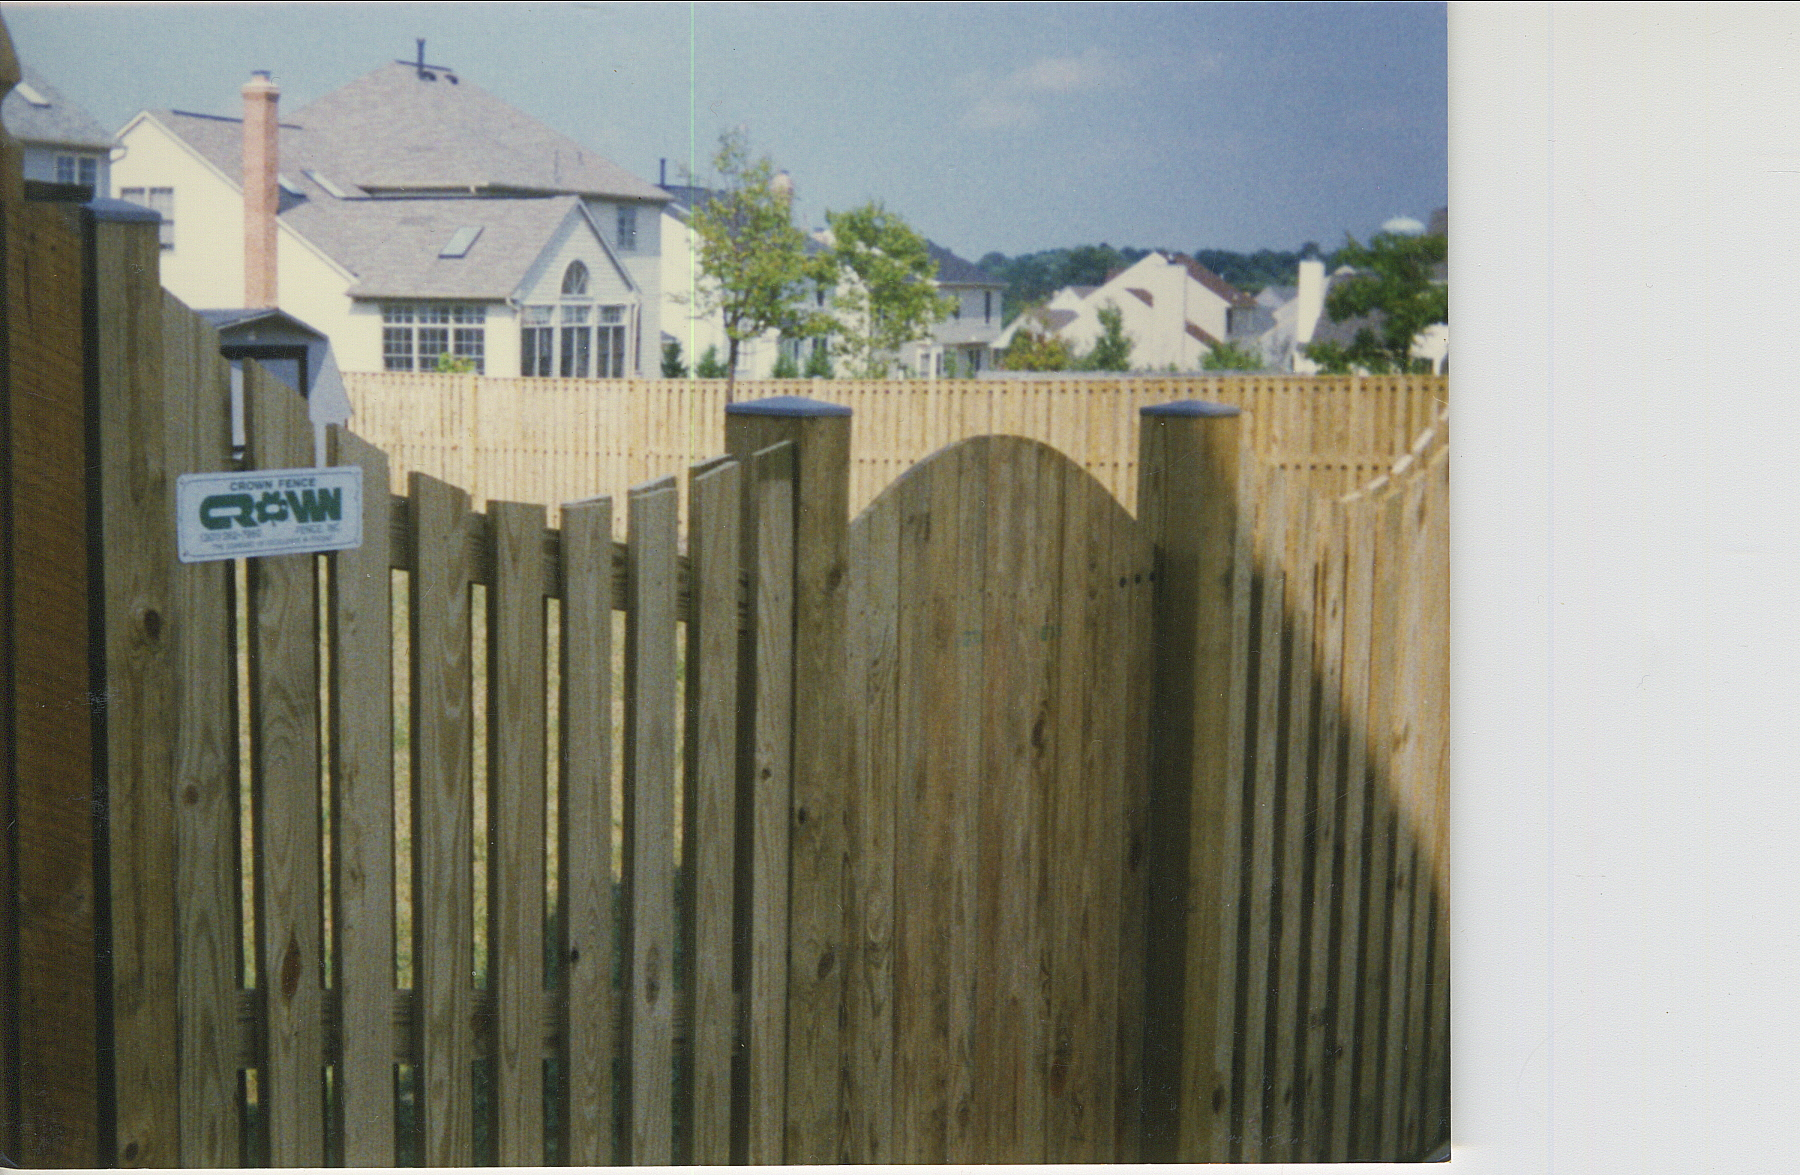 Crown Fence | Wood Privacy Gate